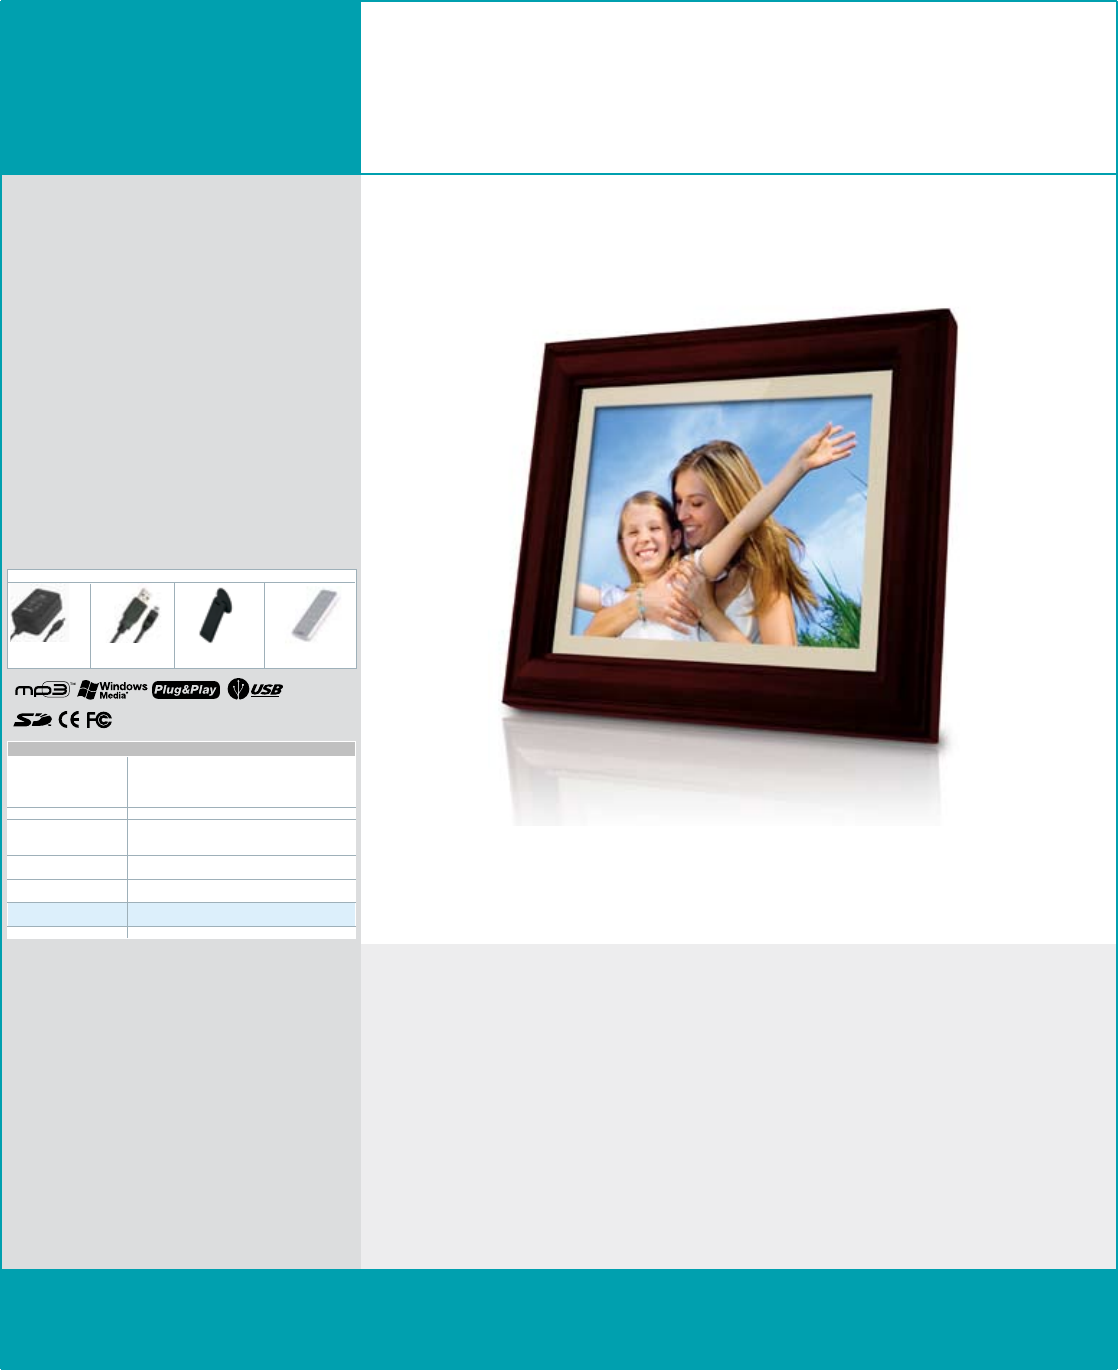 COBY electronic DP848-128 Digital Photo Frame User Manual